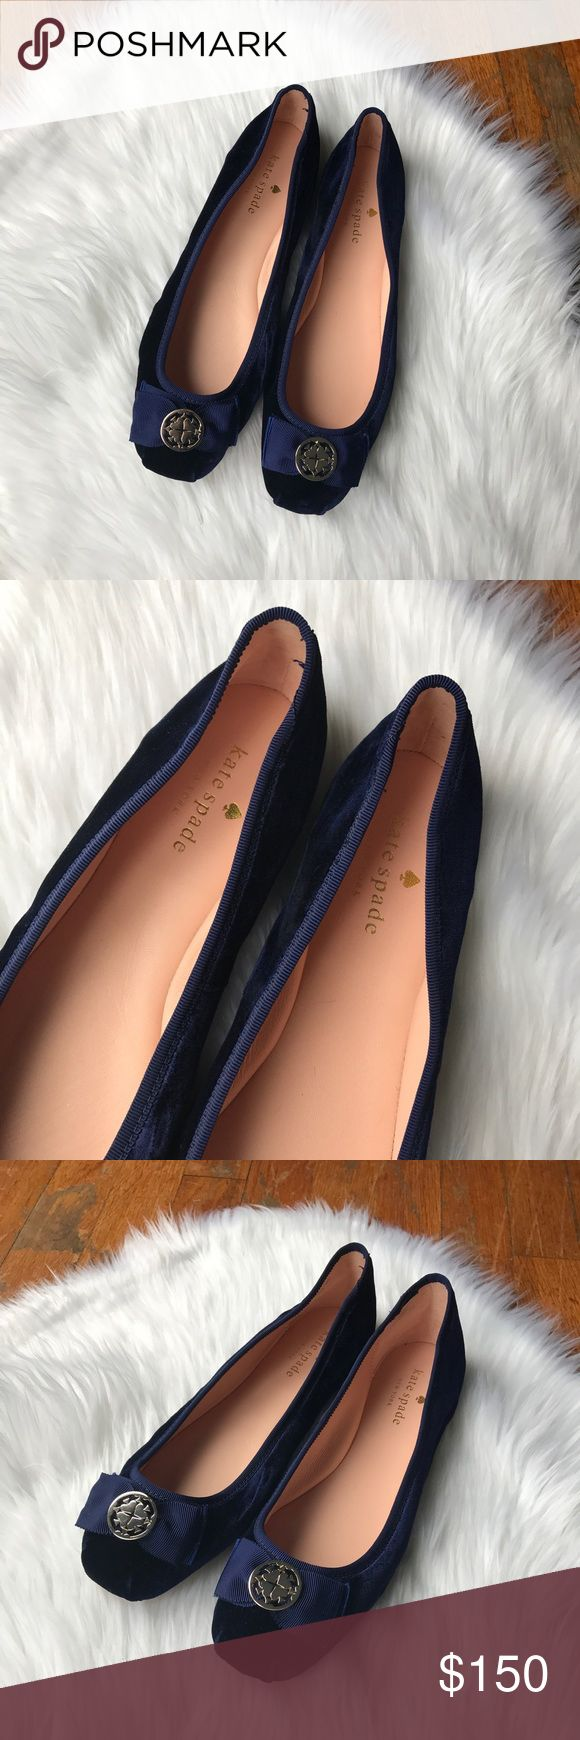 Kate Spade Velvet Medallion Ballet Flats Gorgeous velvet ballet flats by Kate Spade in a dark midnight blue. Spade medallions at the fronts and lightly squared toes mimic real pointe shoes. Leather soles. kate spade Shoes Flats & Loafers